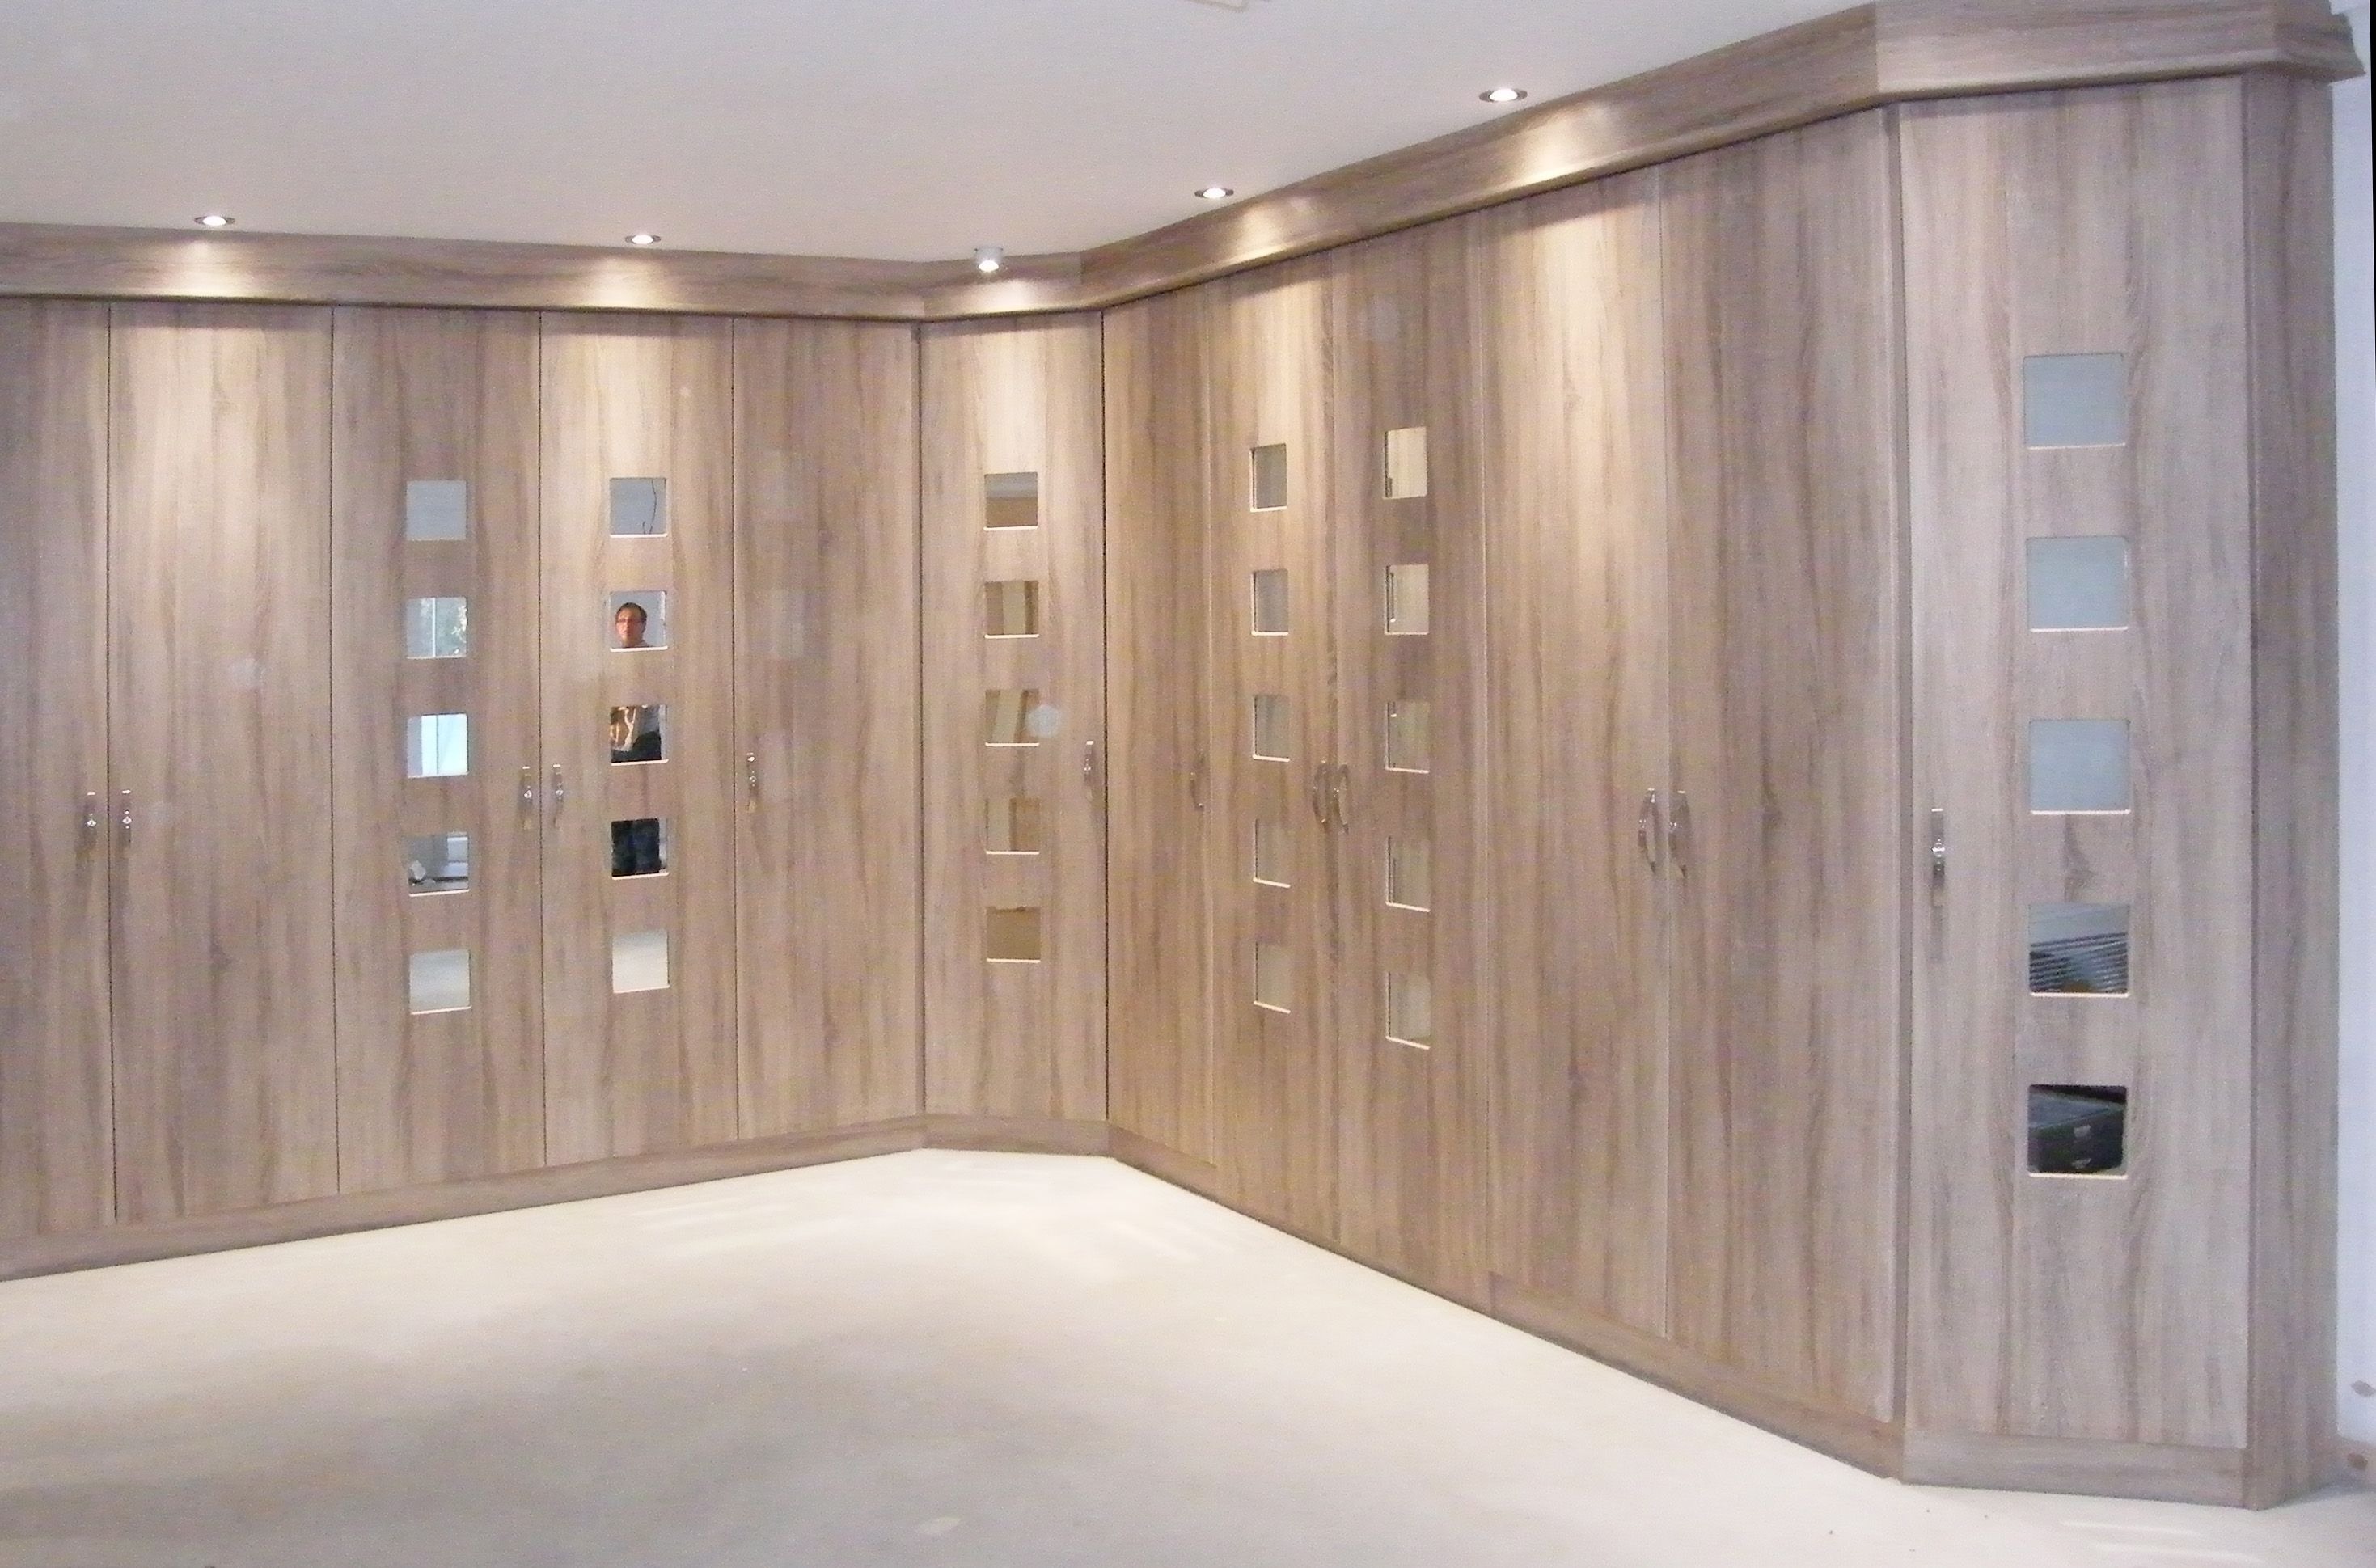 Built In Wardrobe Designs For Bedroom Enchanting Contemporary Fitted Wardrobe Design With Wooden Style Doors For Review